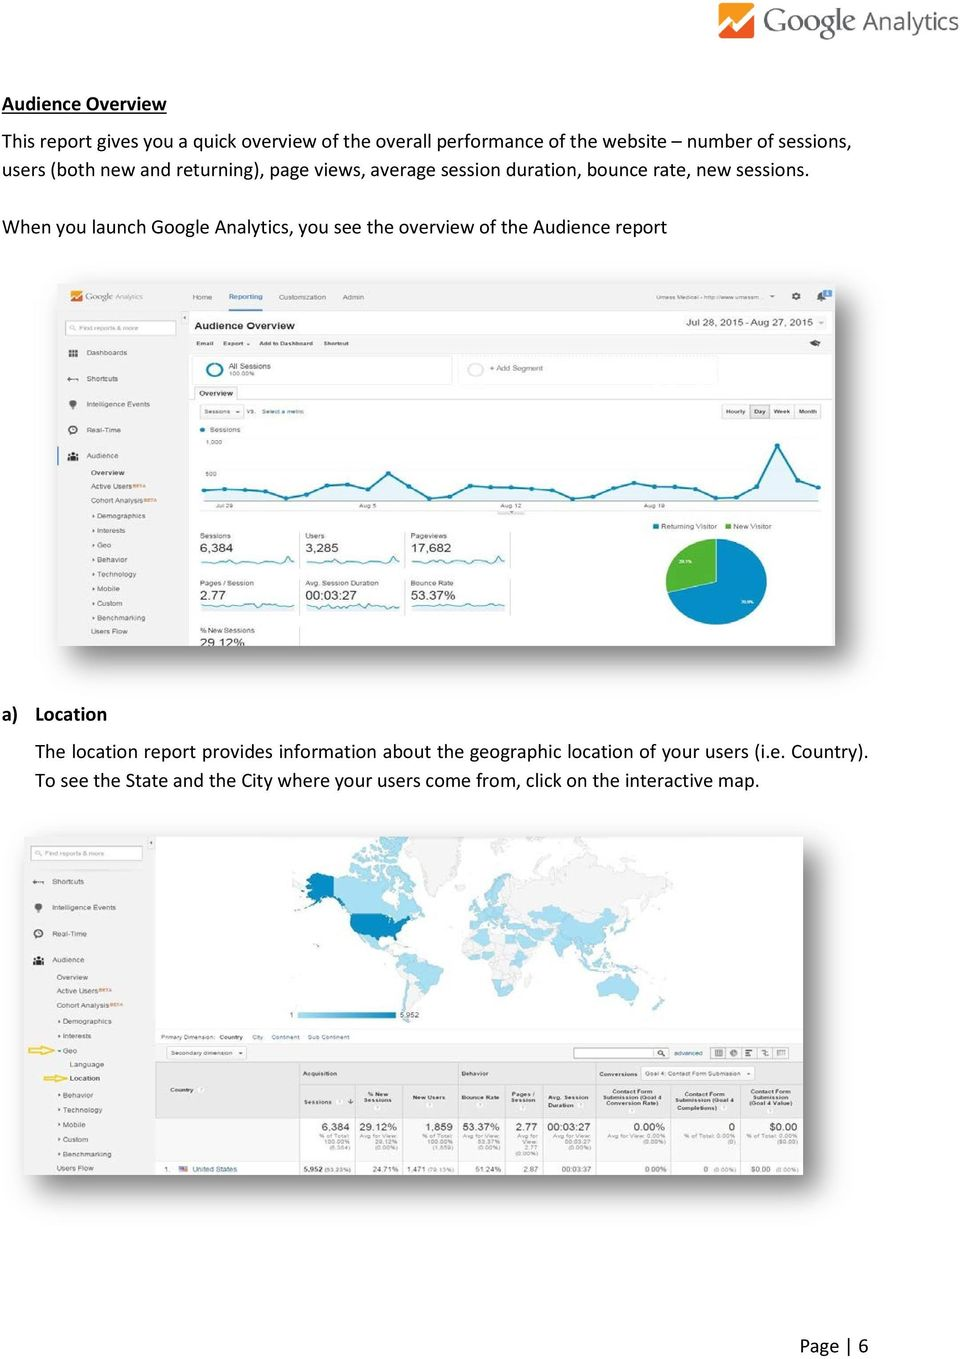 When you launch Google Analytics, you see the overview of the Audience report a) Location The location report provides